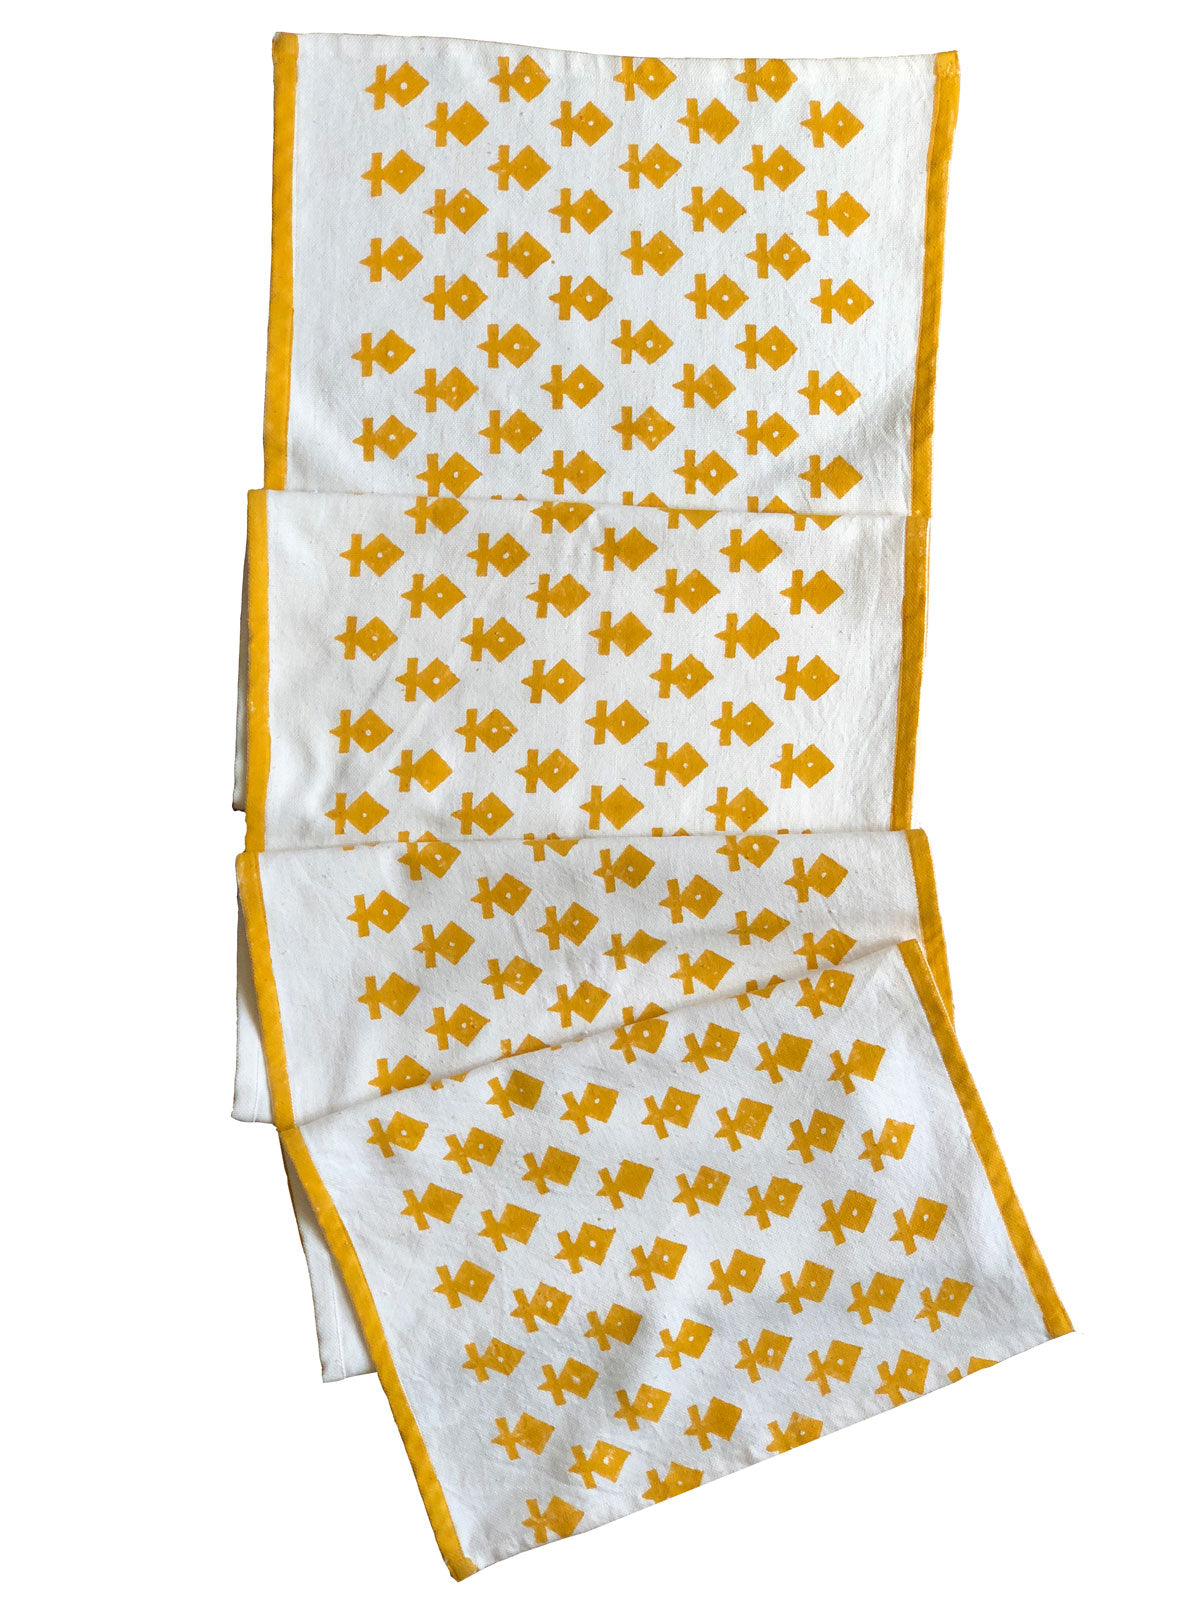 A gorgeous mustard colored handwoven, hand block printed table runner - perfect for spring and summer table tops. Ethically handmade by artisans in Gujarat, India. Your support helps preserve the ancient craft traditions of India.